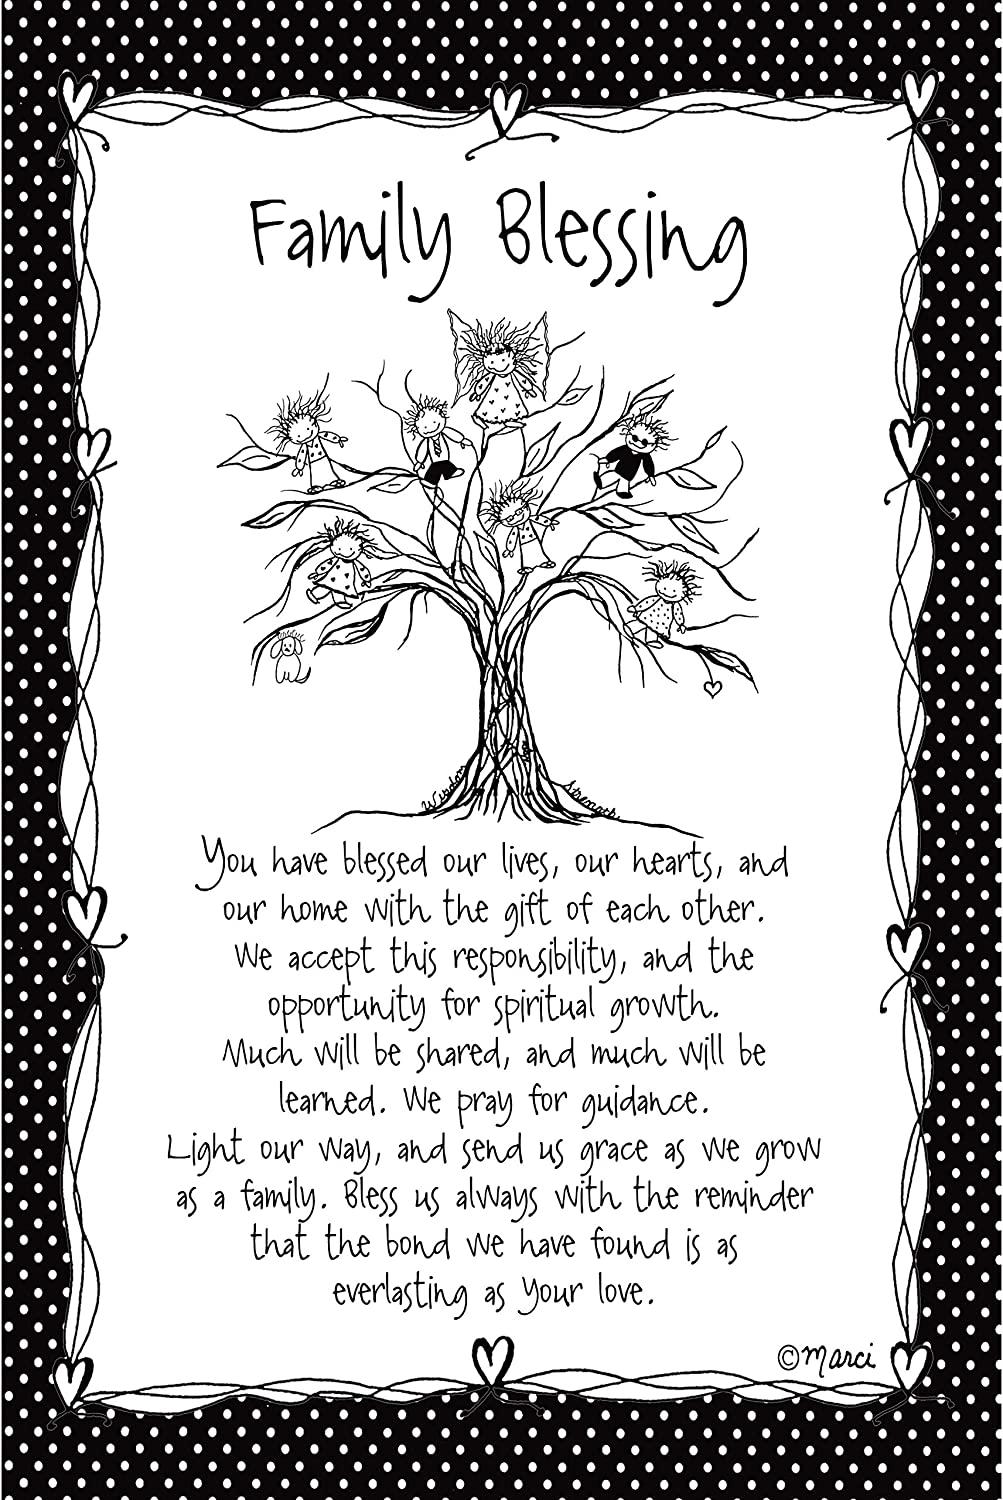 Family Blessing Wood Plaque - Children of The Inner Light by Marci | Elegant Vertical Frame Wall Art & Tabletop Decoration | Easel & Hanging Hook | Measures 6 inches x 9 inches